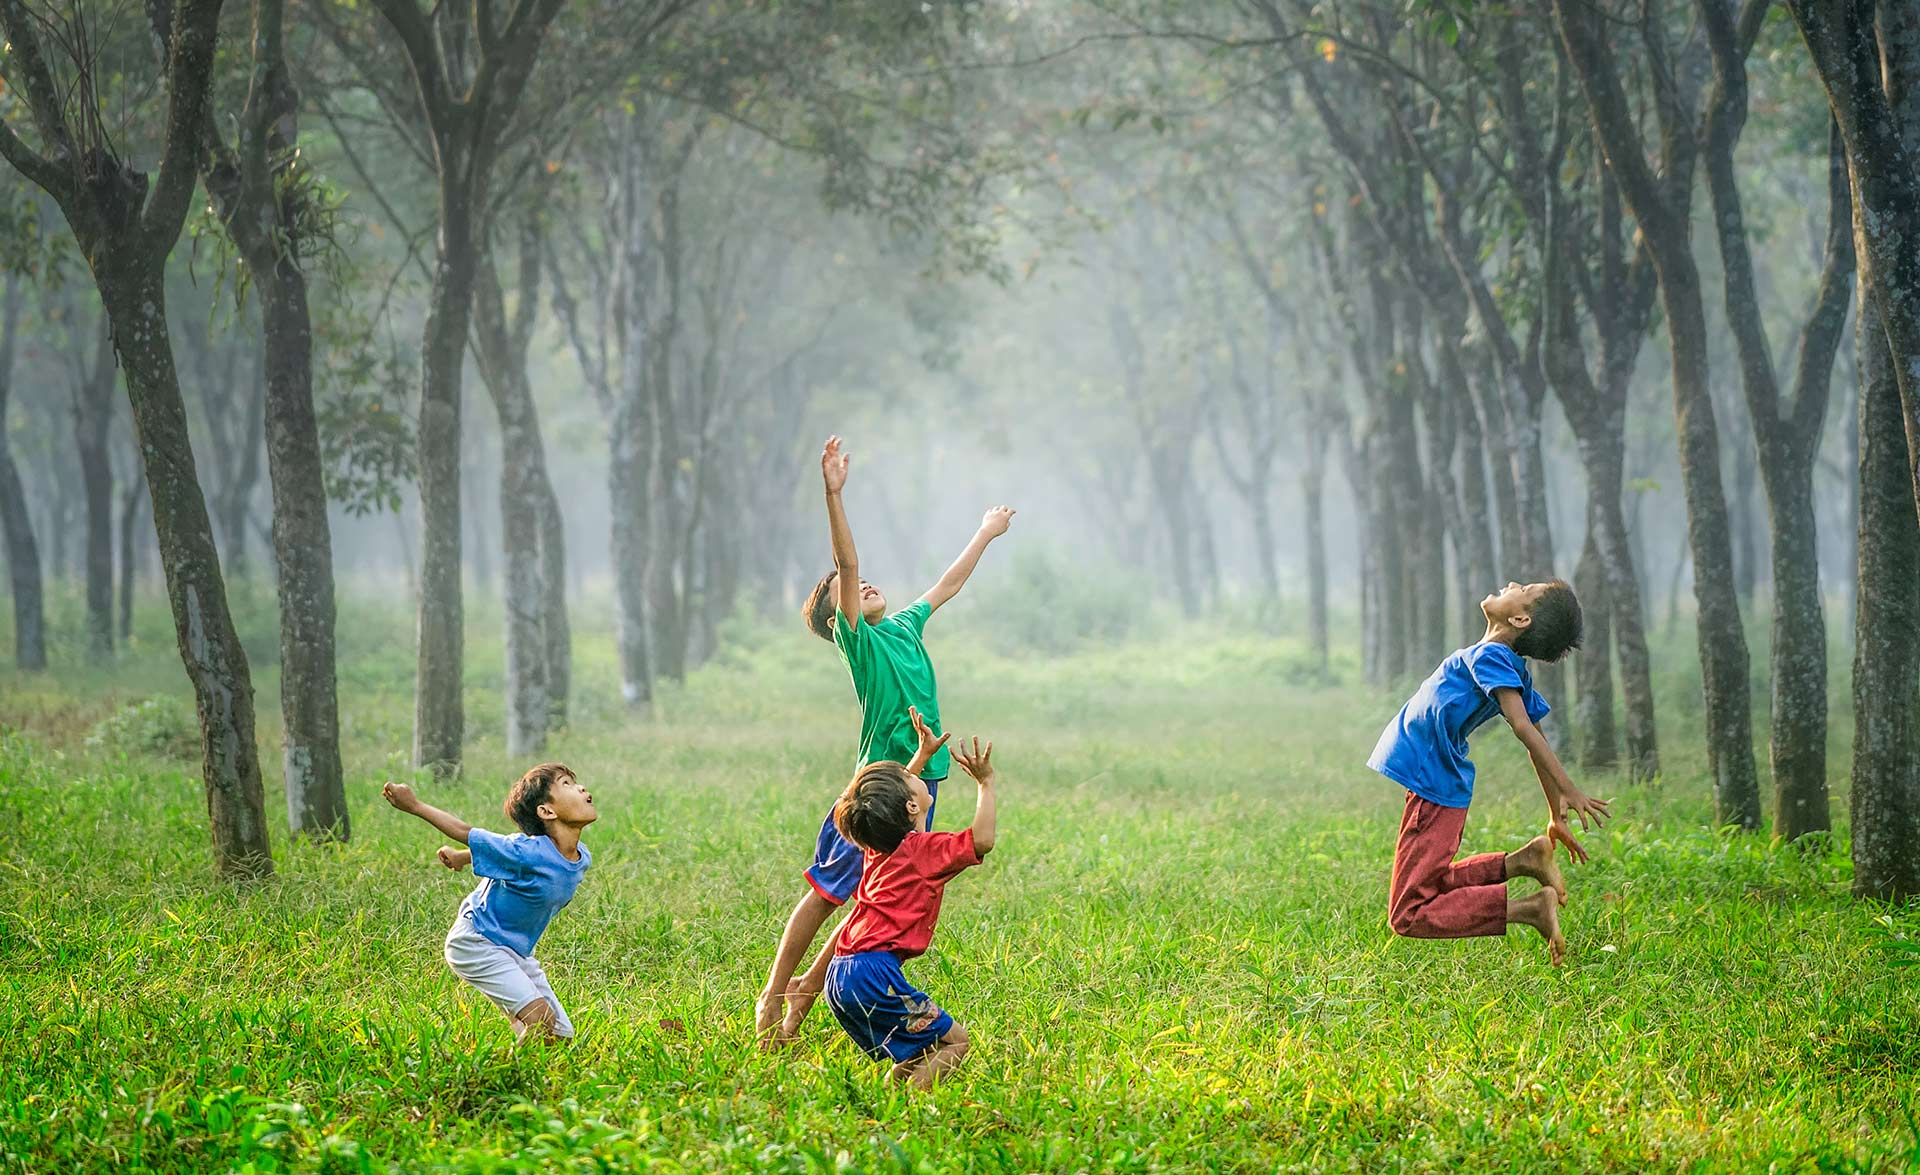 CSR: Children playing in the forest